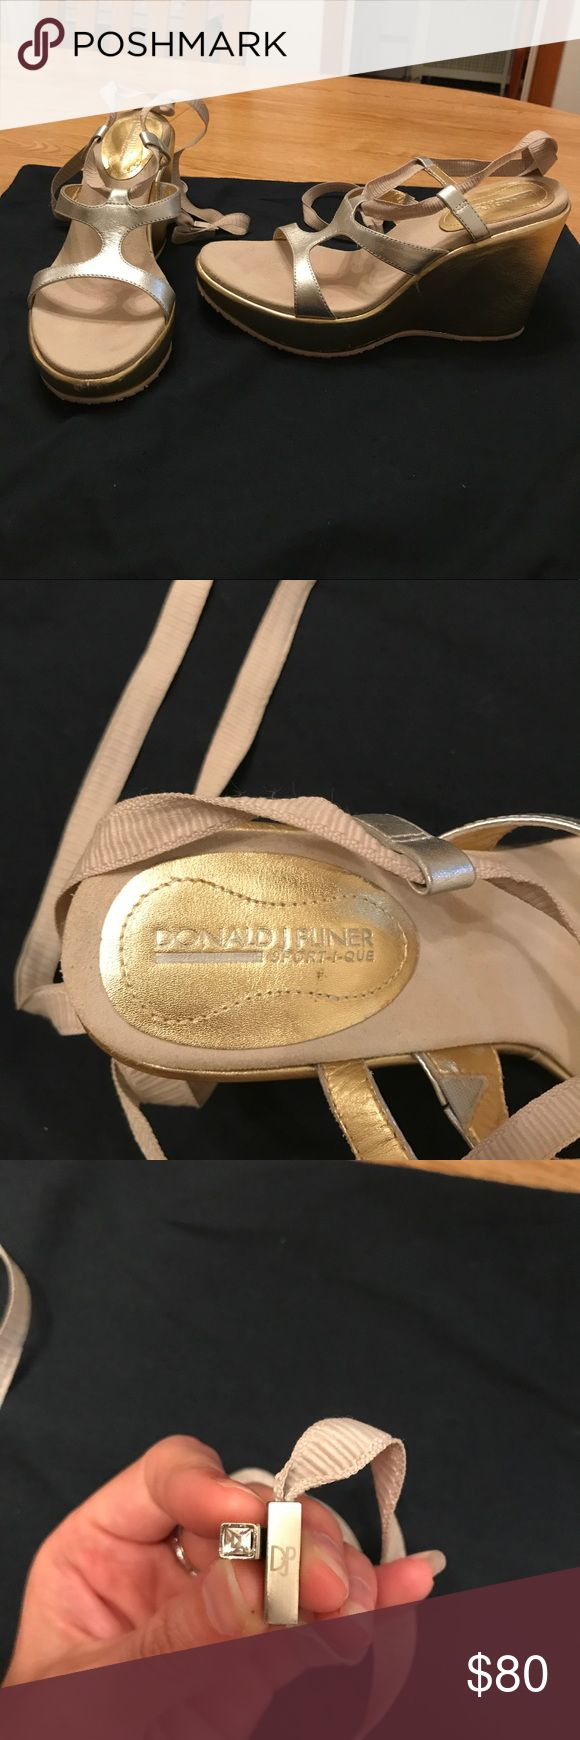 Donald J Pliner Wedge Sandal Gold wedge heel with wrap around the ankle lace. Diamond detail in the end part of the lace. Donald J. Pliner Shoes Sandals